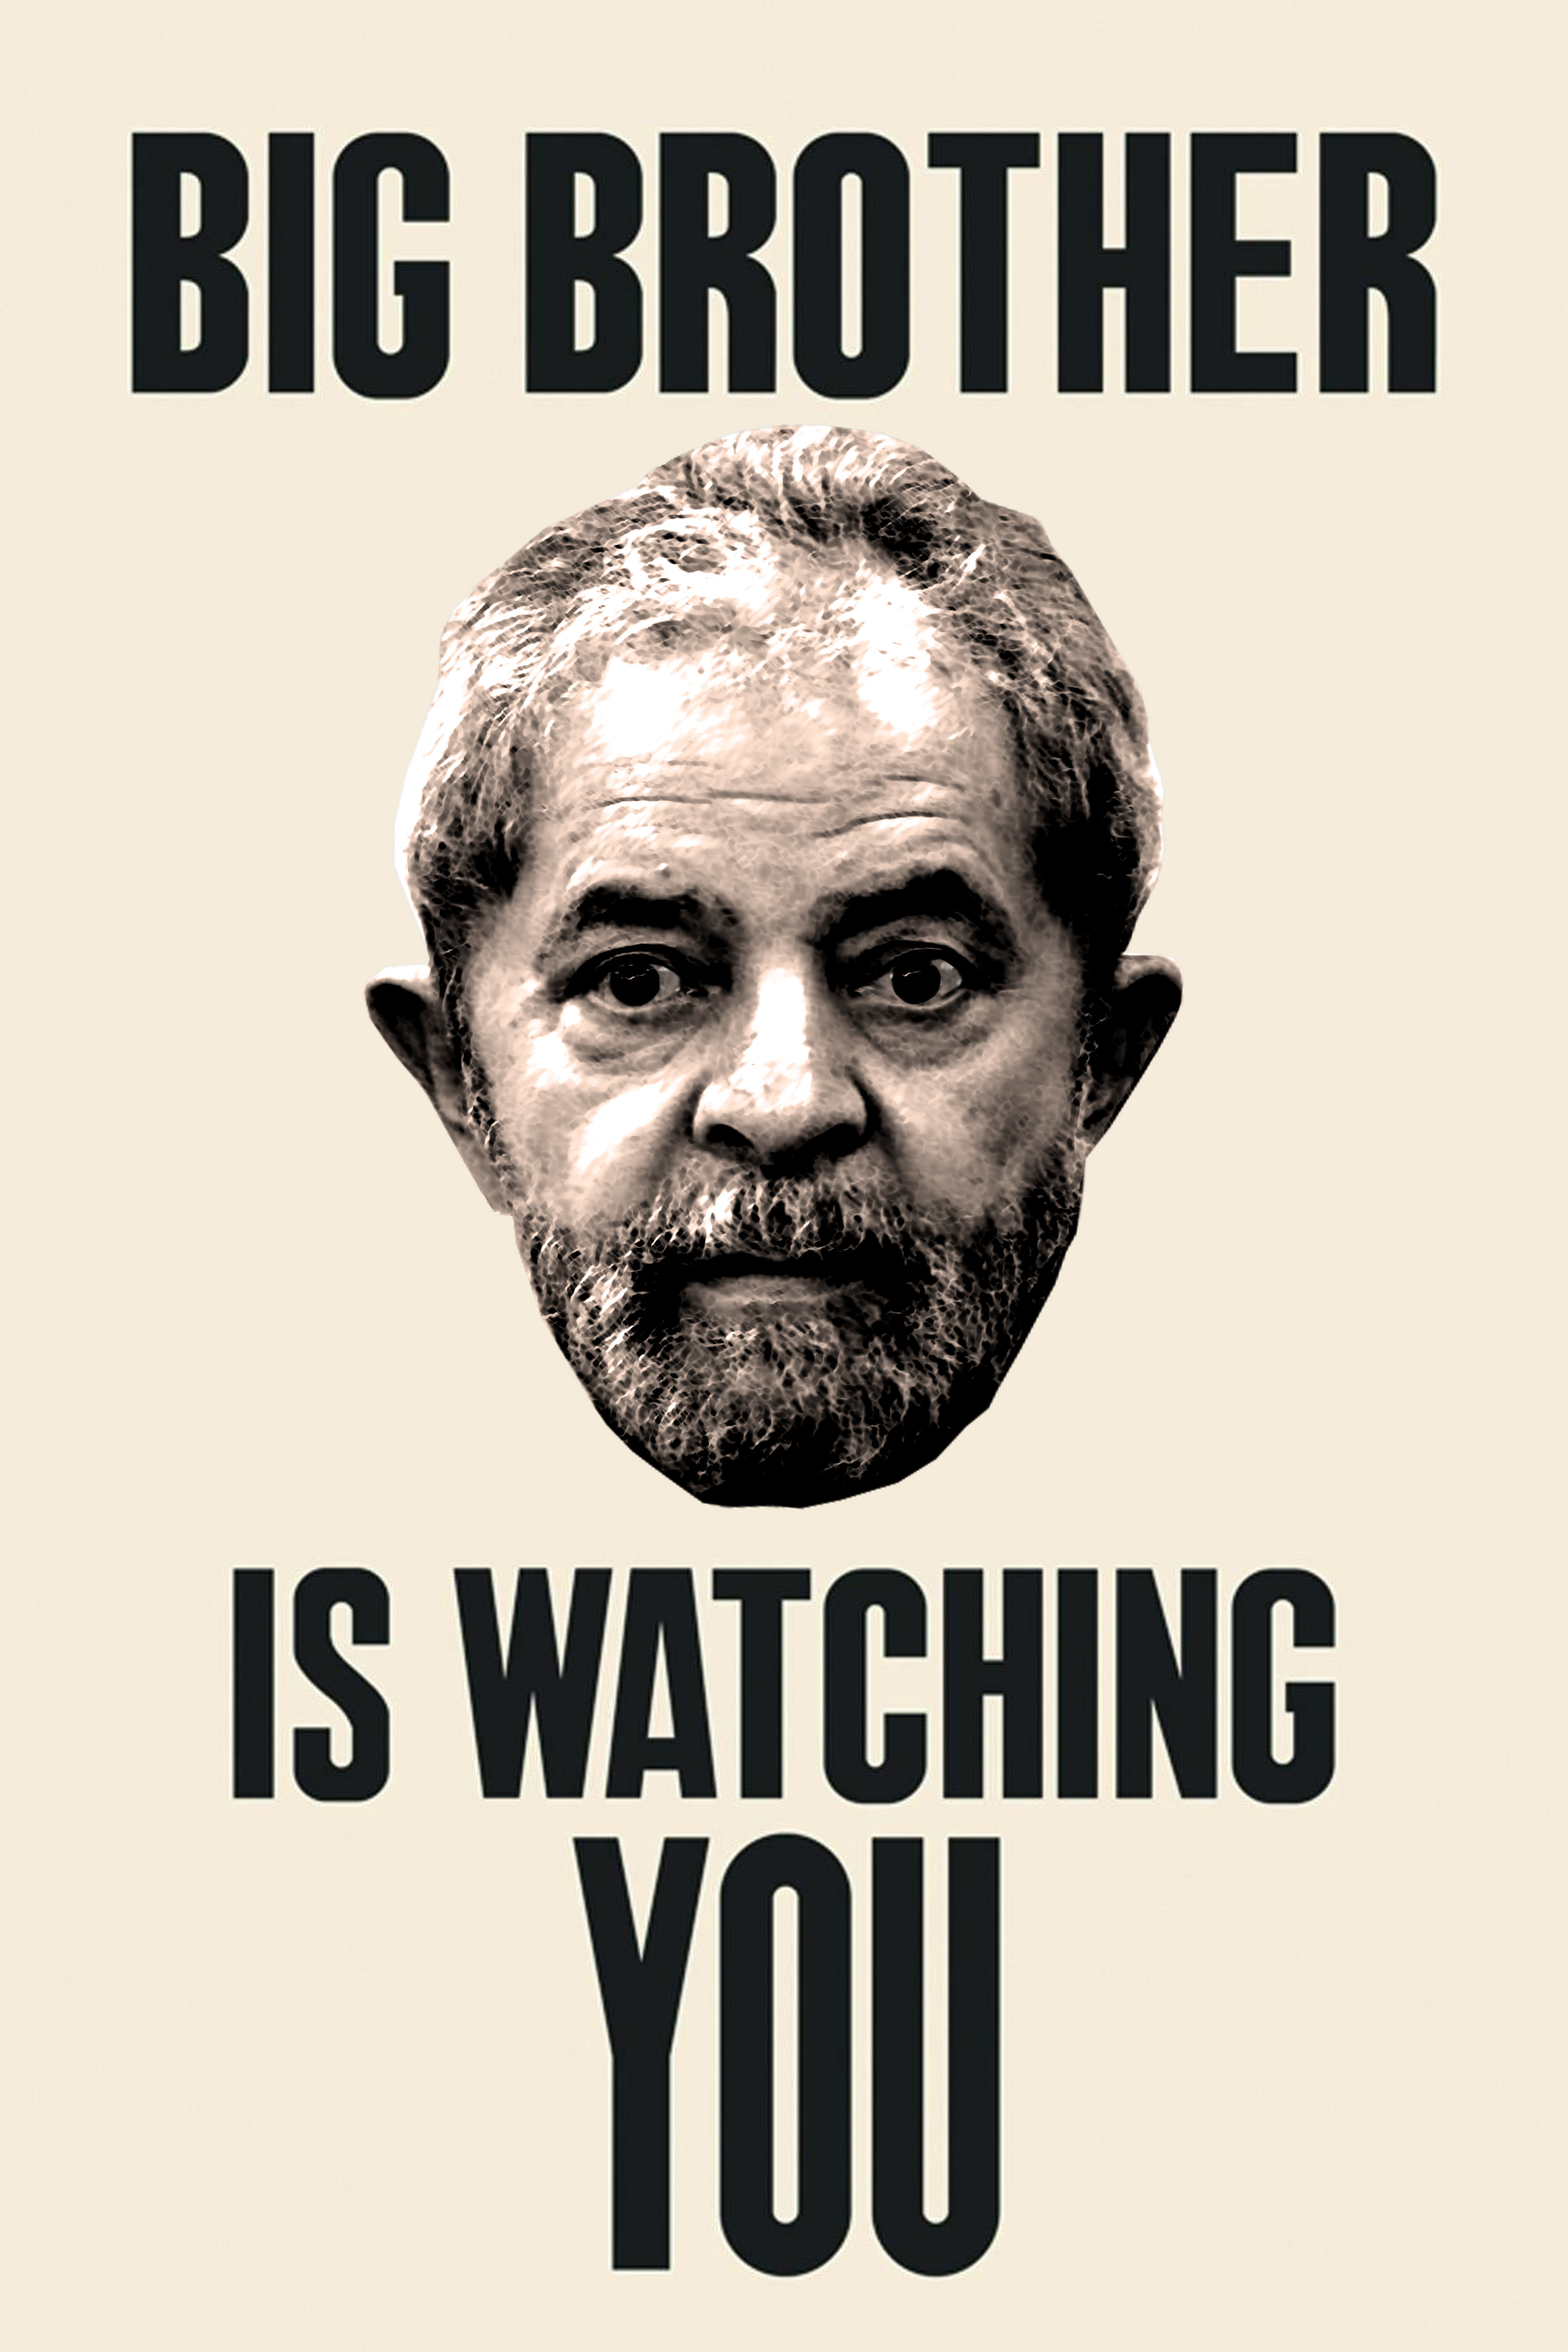 Lula is watching you.jpg